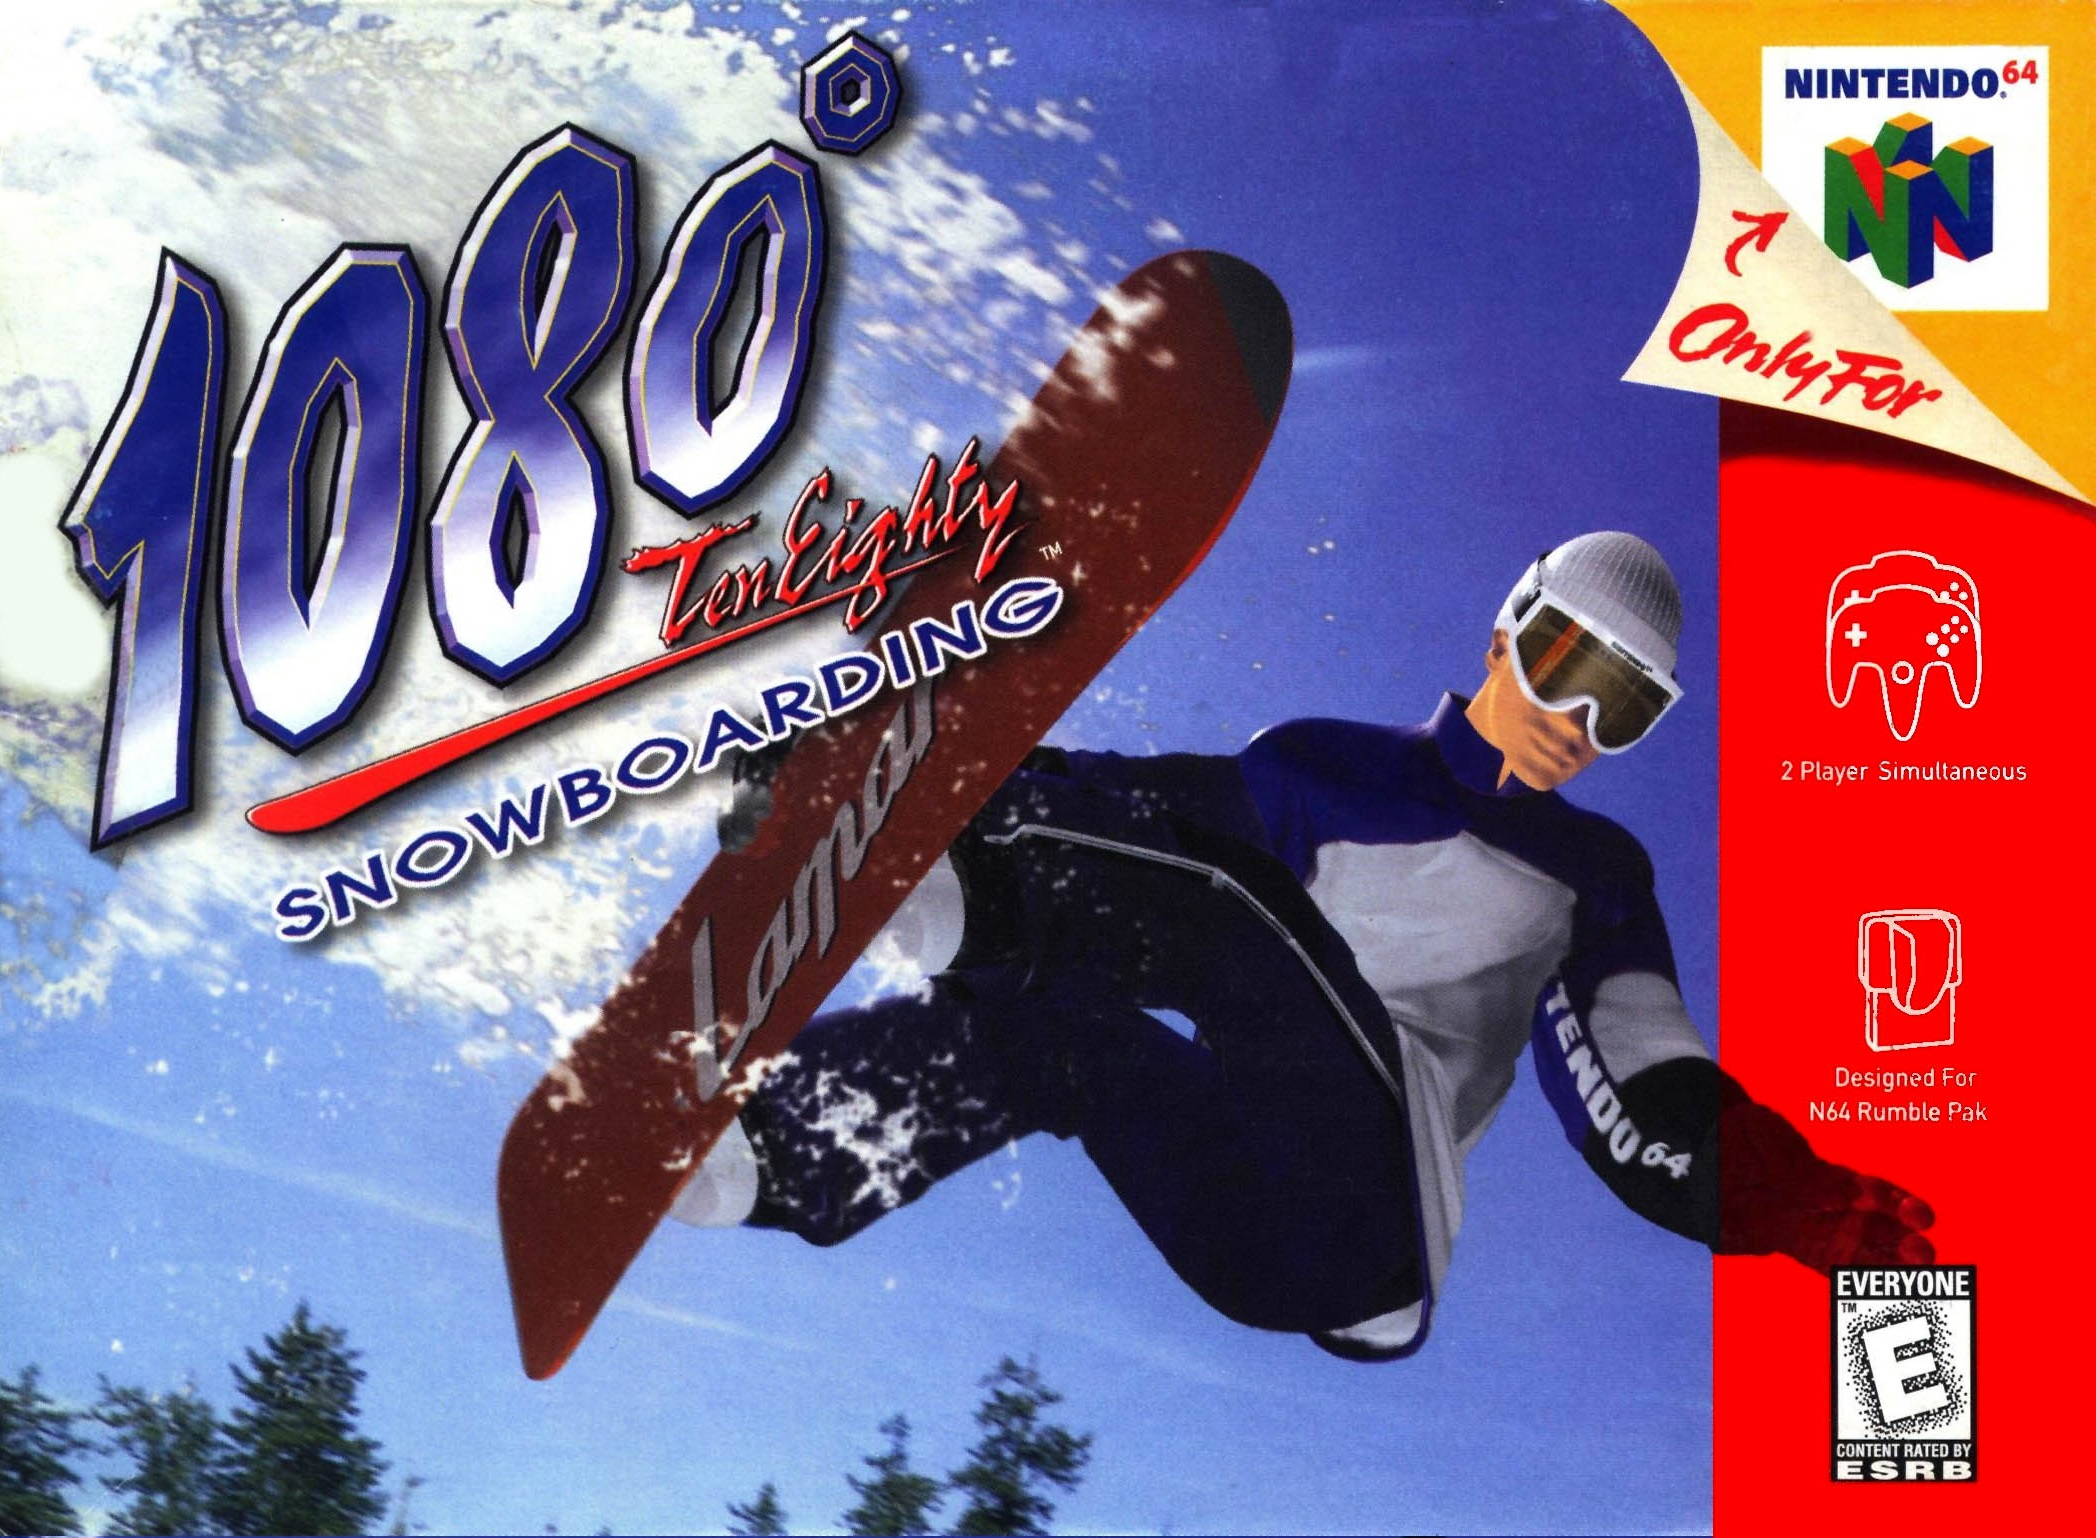 1080: Ten Eighty Snowboarding